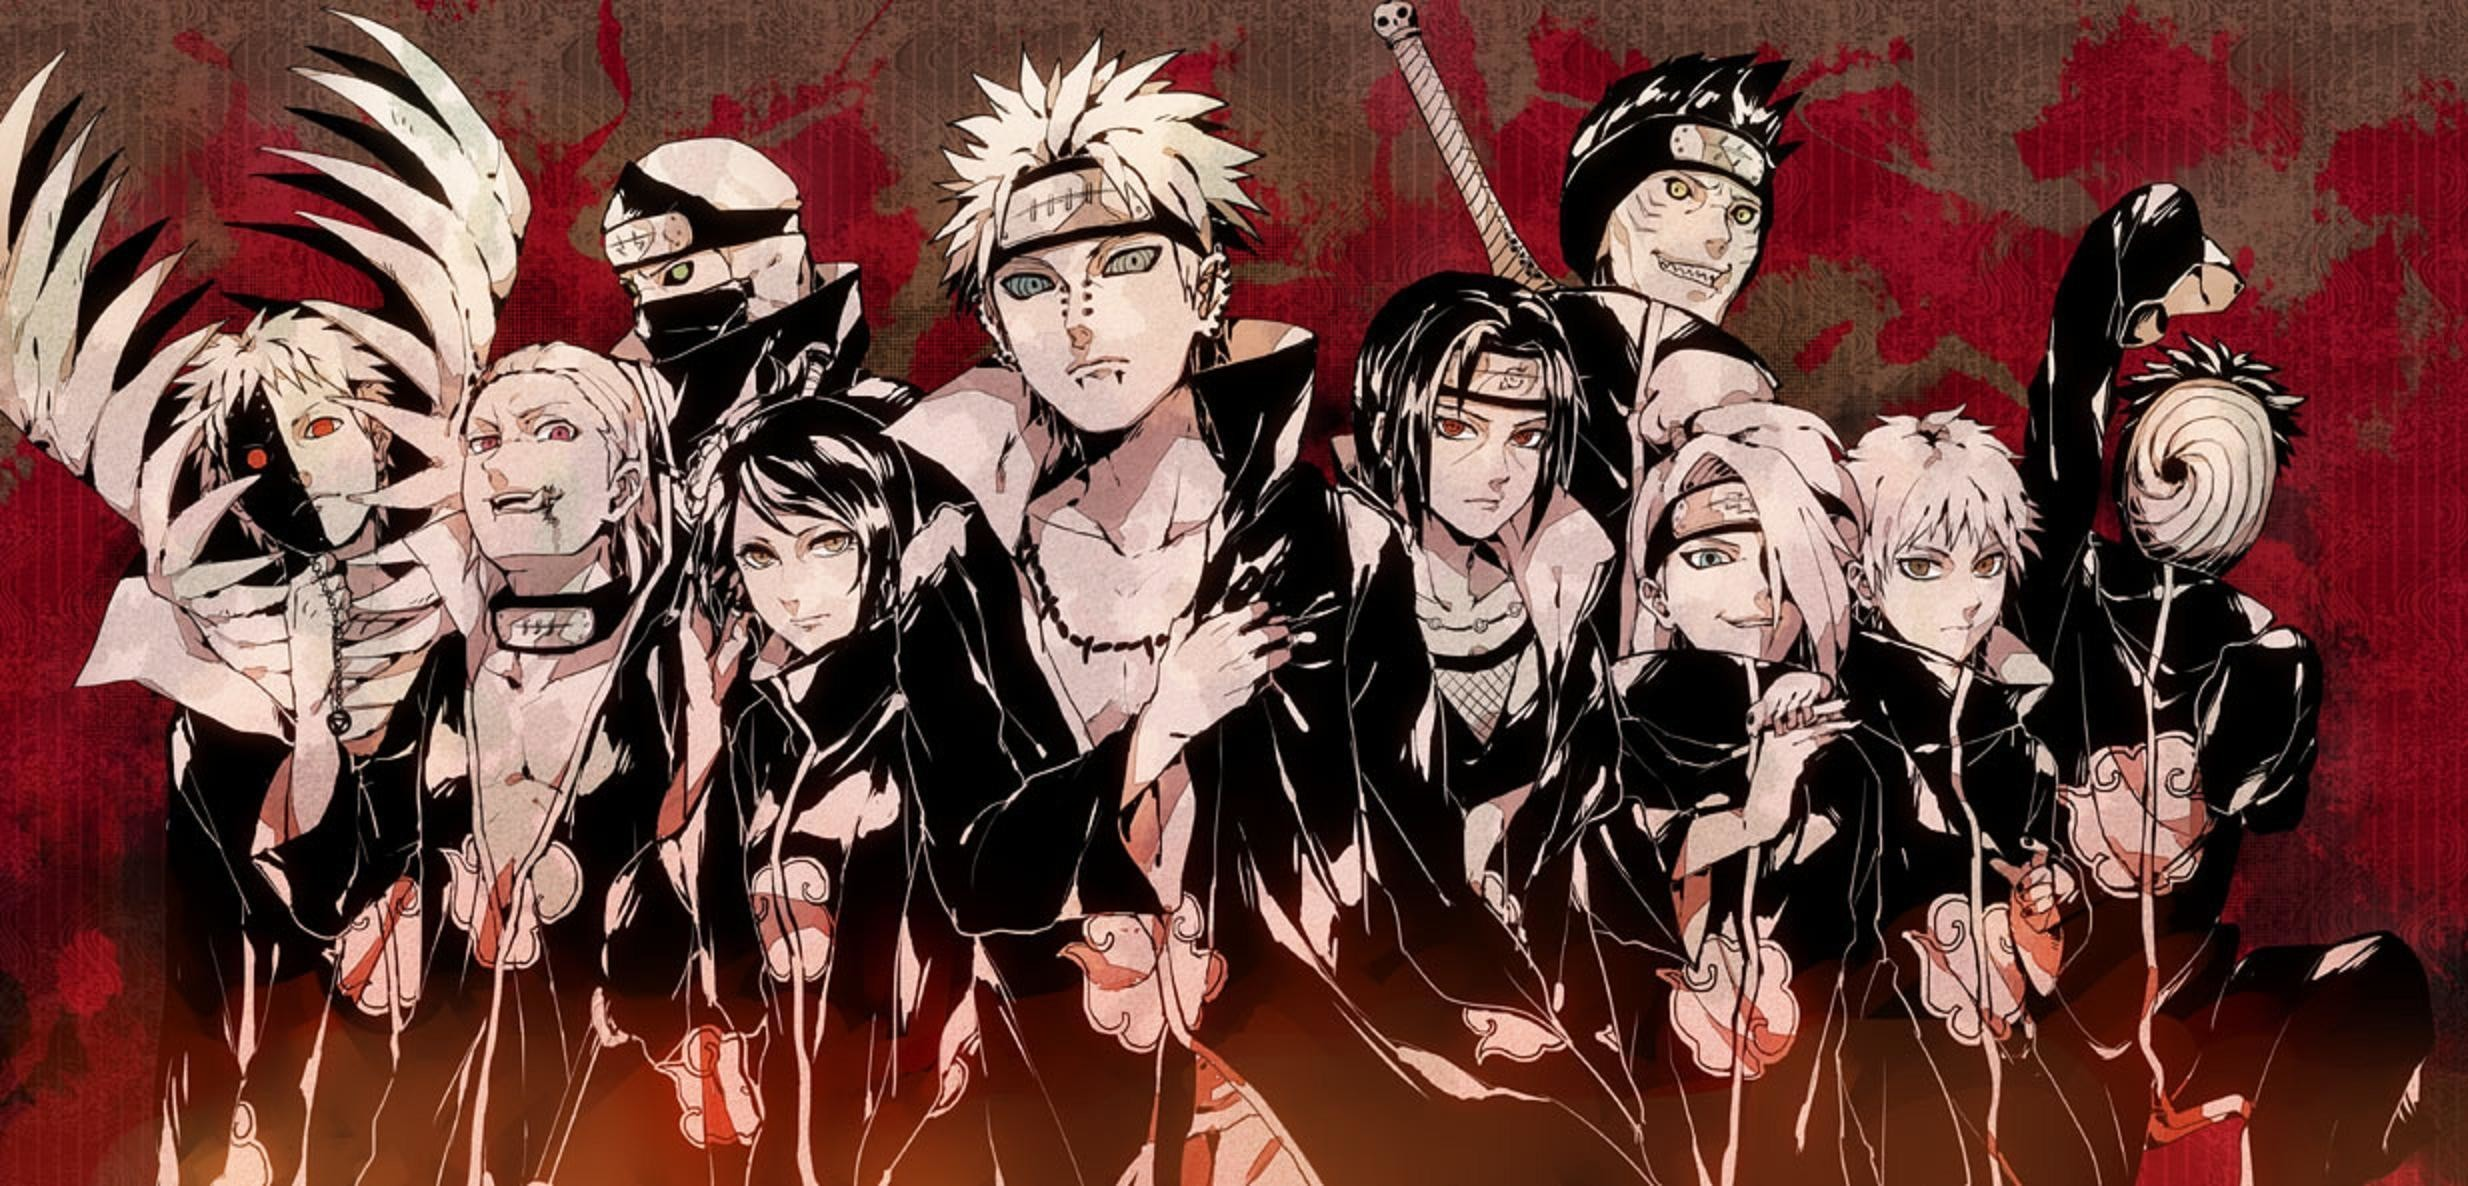 Res: 2468x1186,  Wallpapers For > Akatsuki Wallpaper For Windows 7